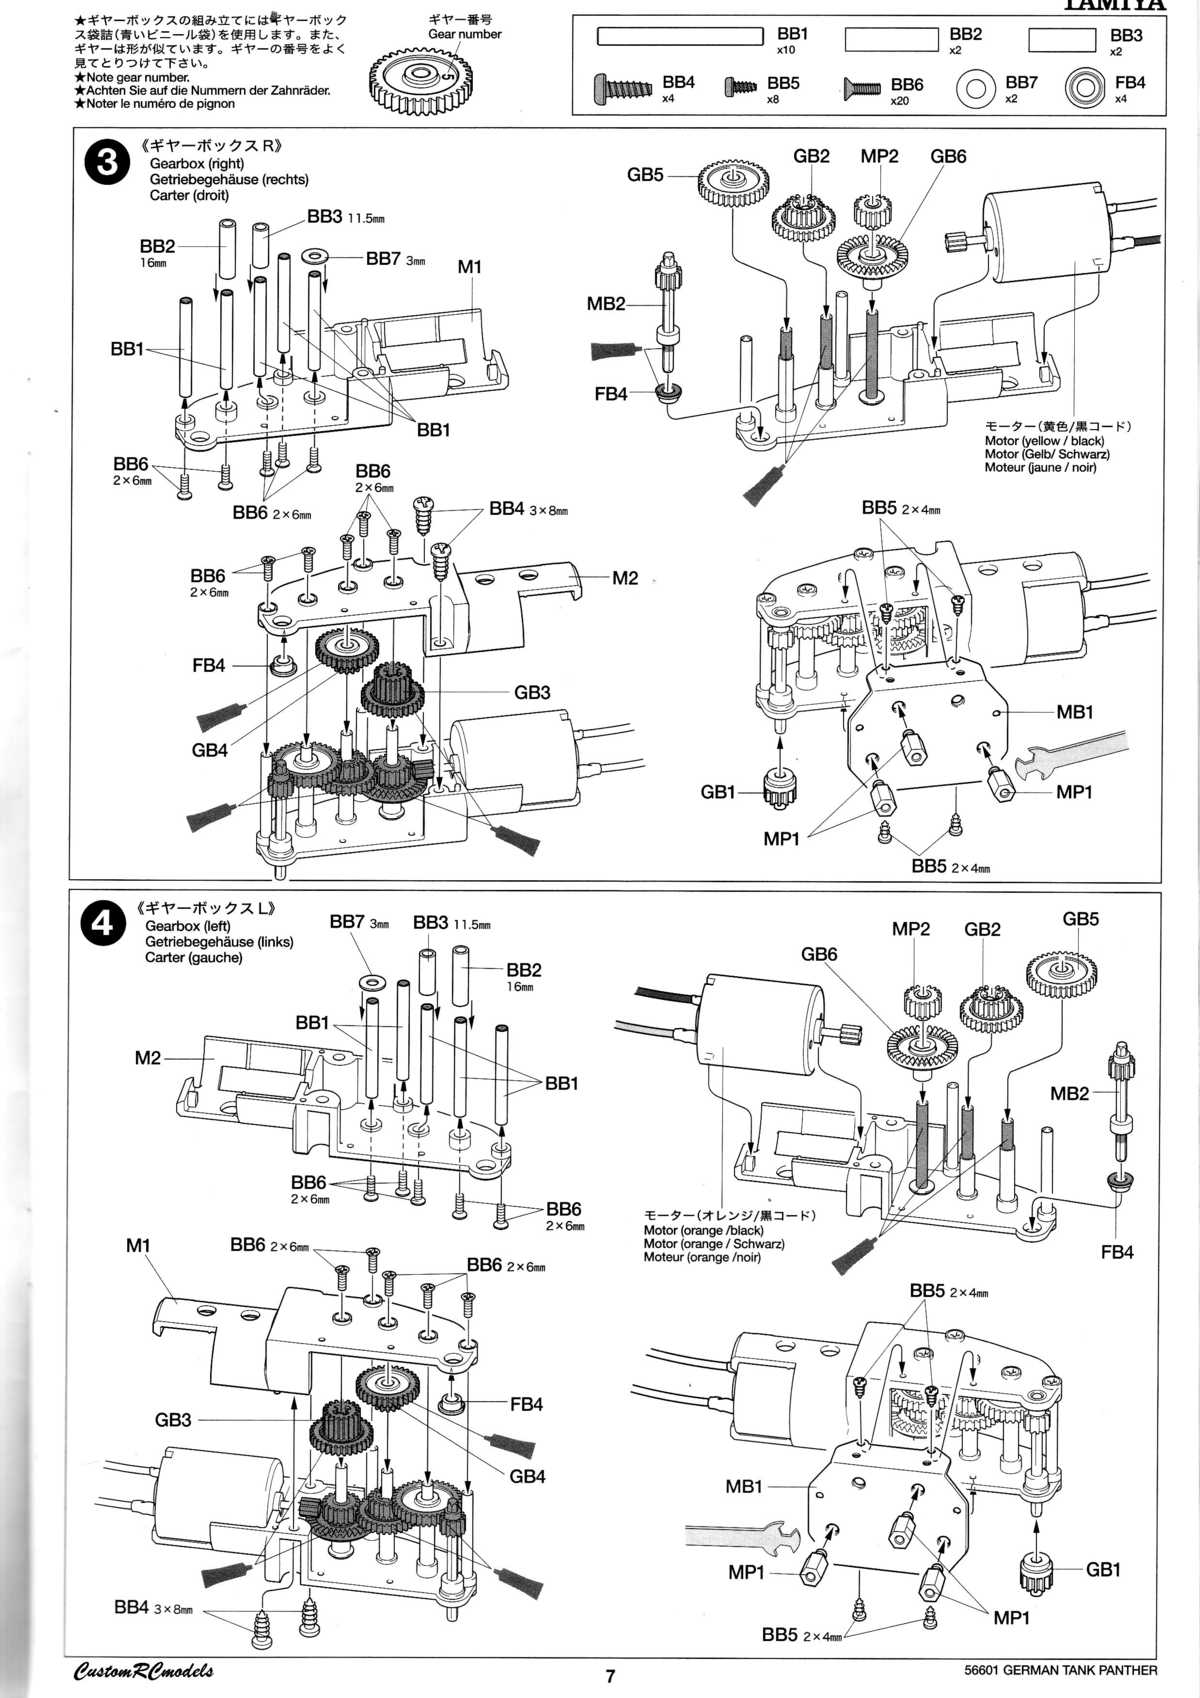 Mercedes Benz Engine Overview Wiring Diagram And Fuse Box Epc Id26 M